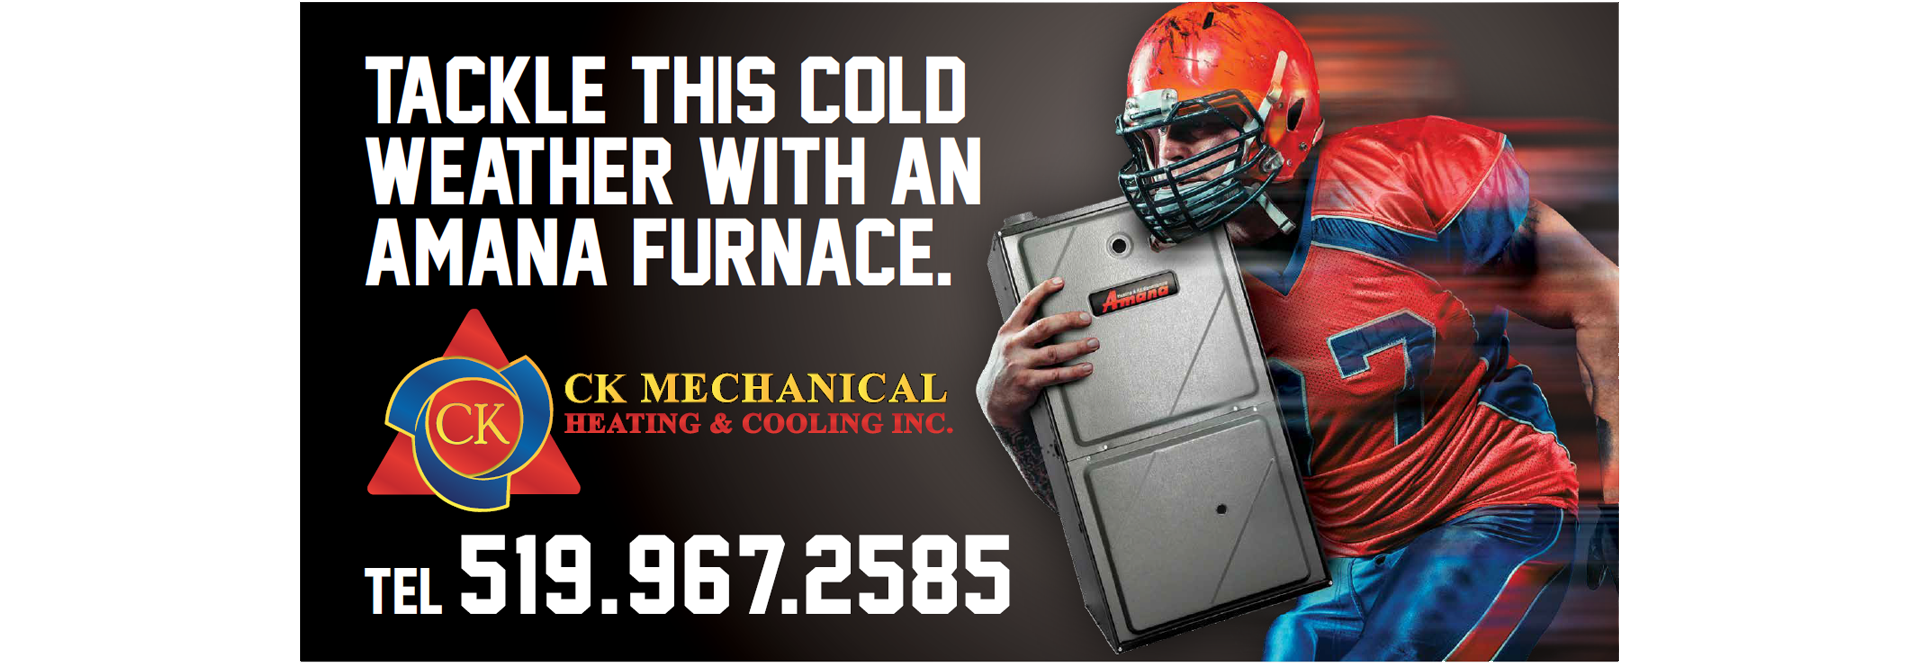 Tackle the Cold This Winter with An Amana Furnace